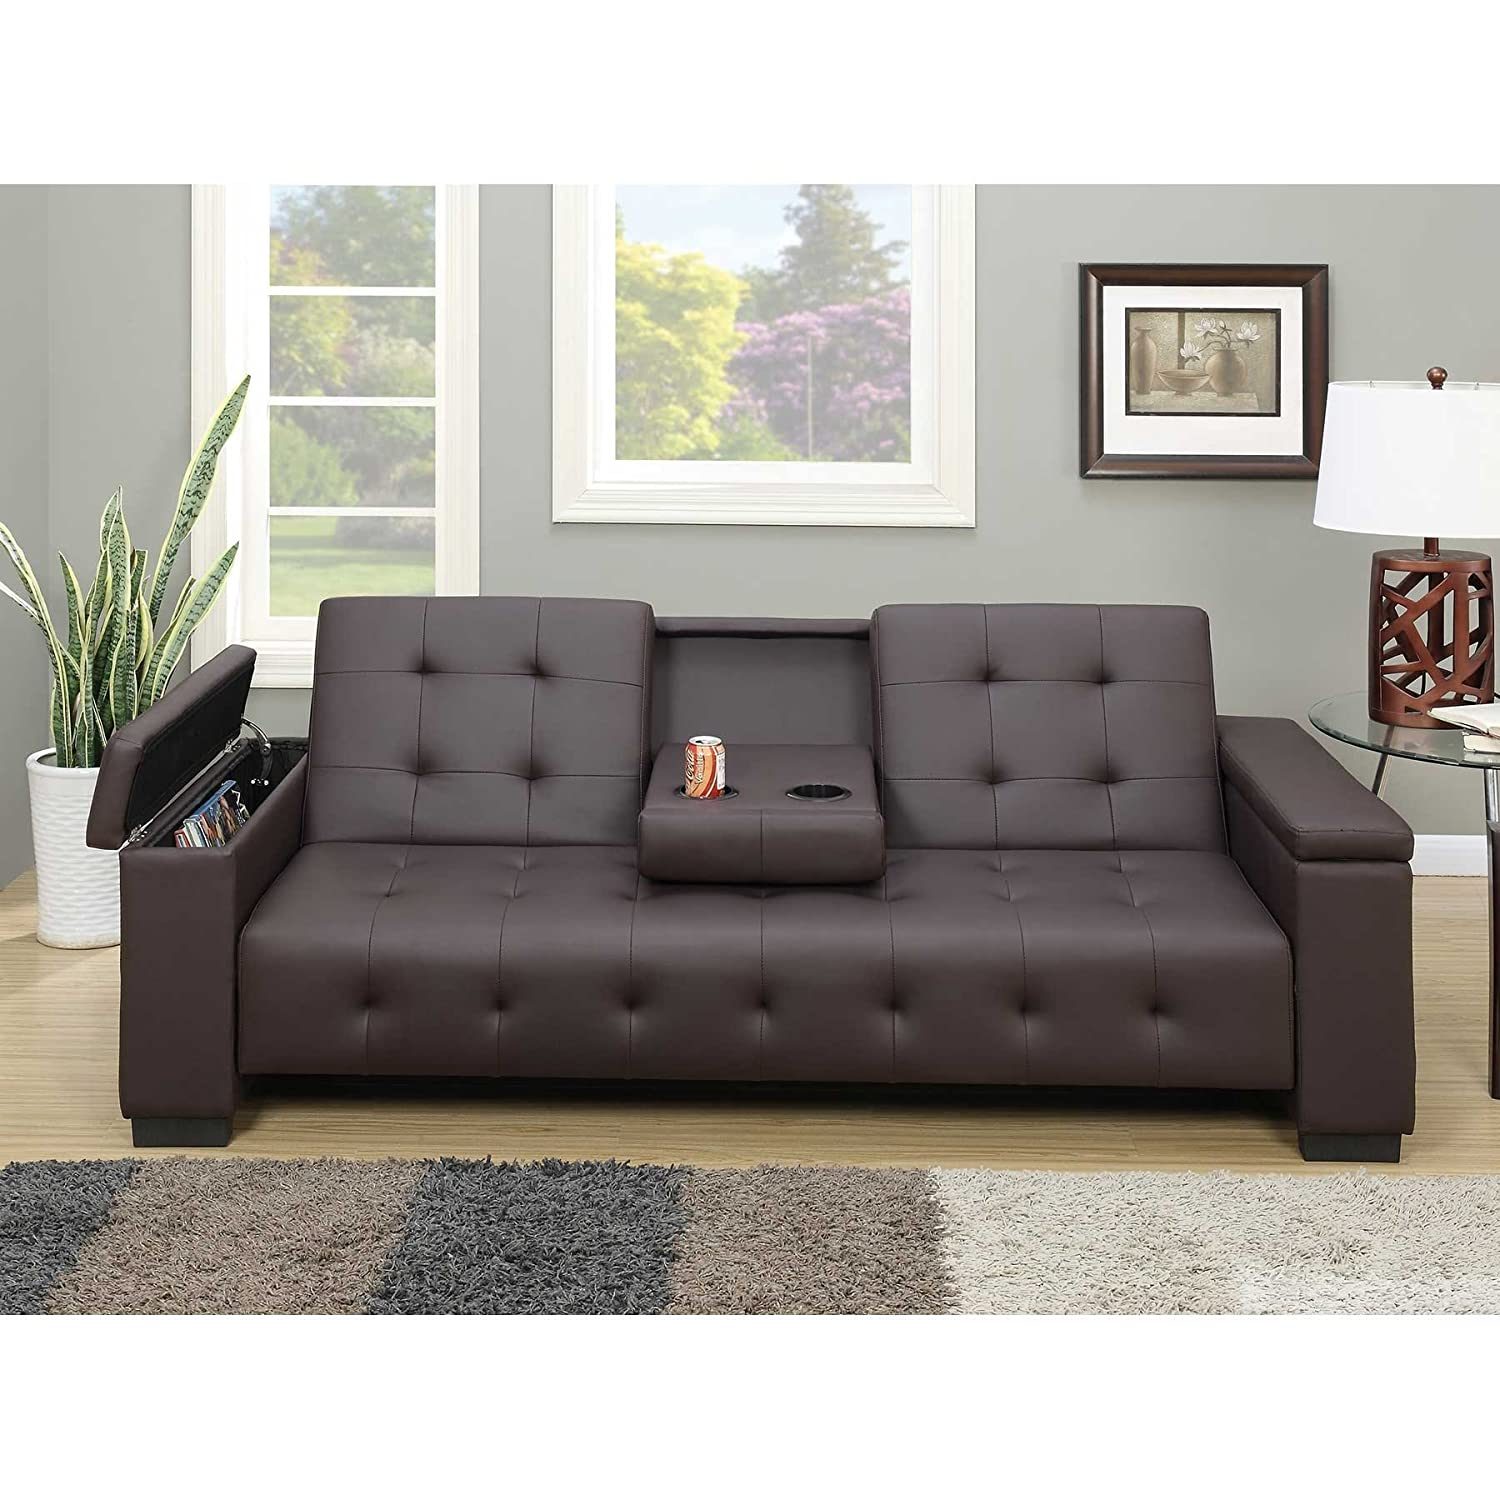 Adjustable futon sofa bed matte finished faux leather upholstery fold down center console contemporary style pine wood particle board armrest storage